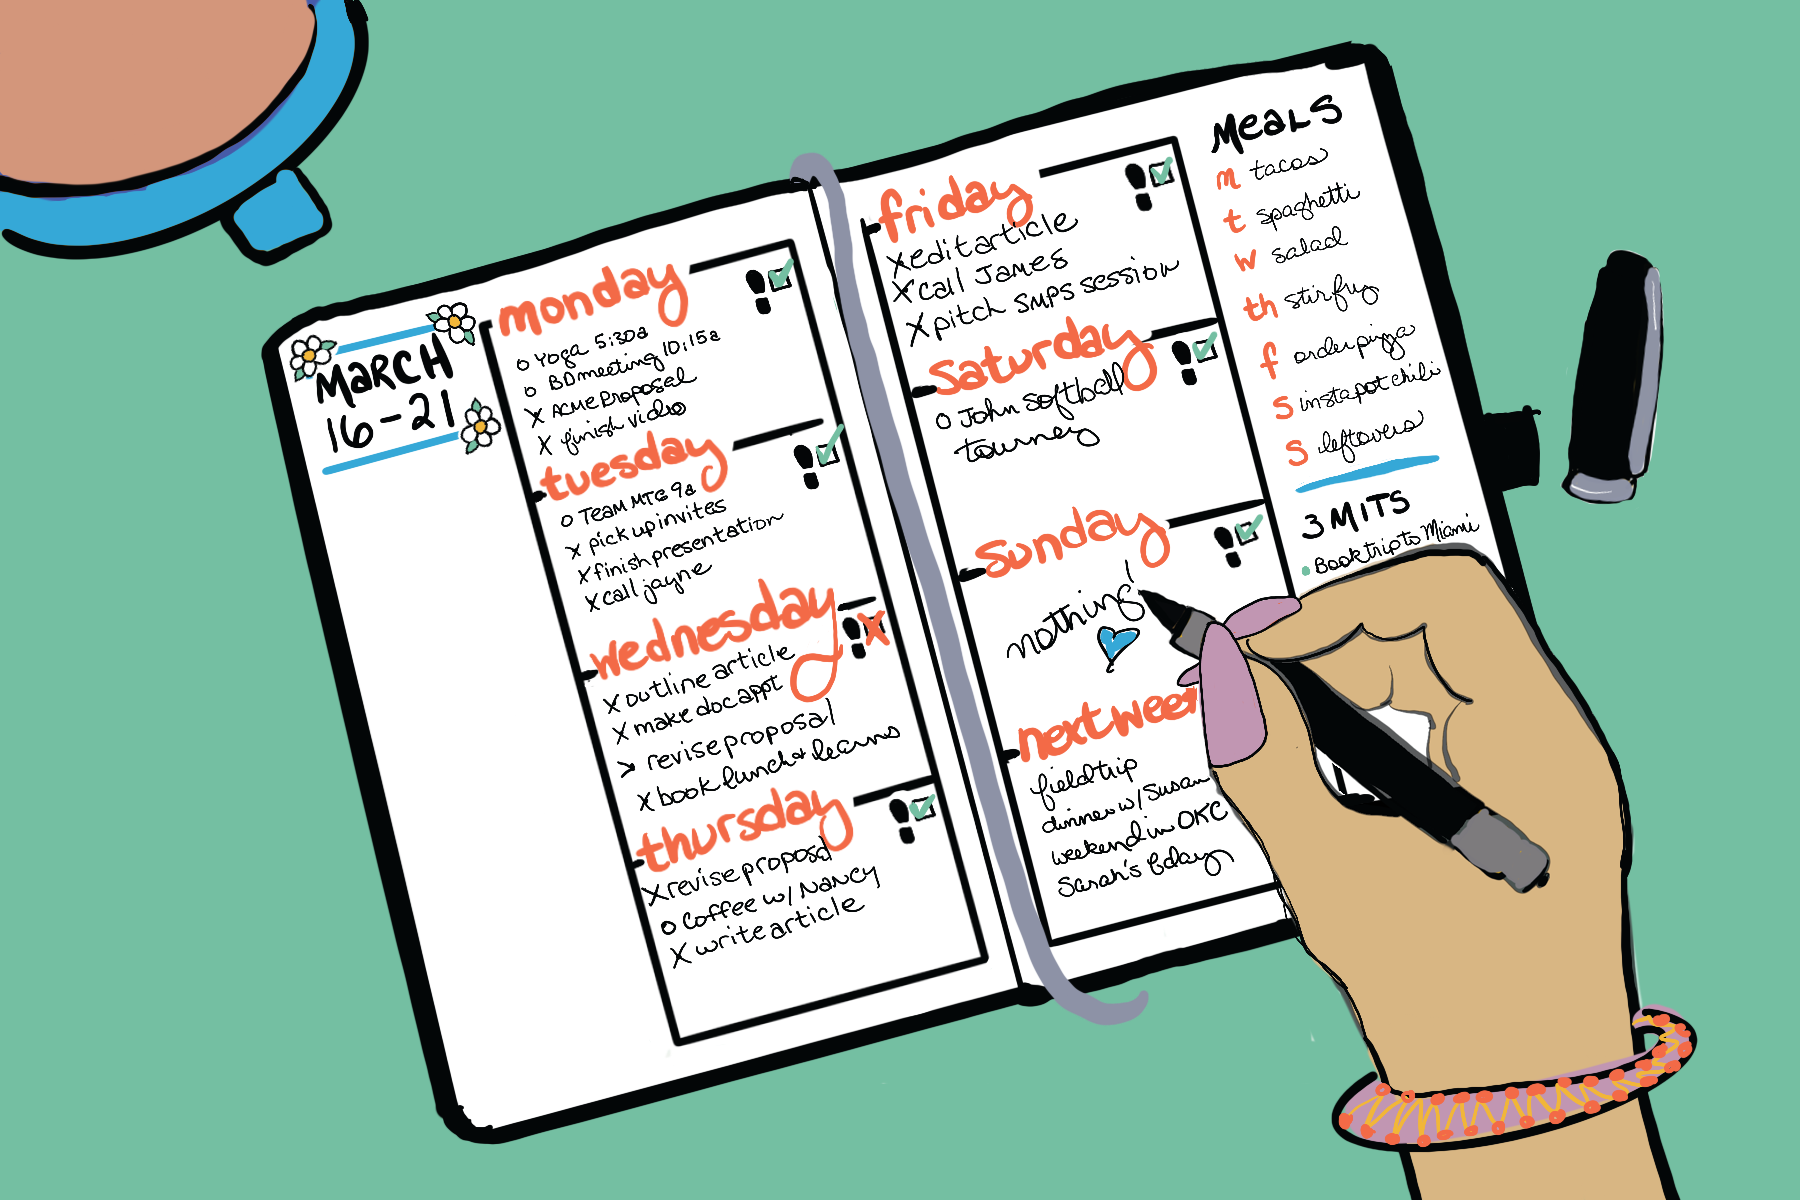 While it seems like there are endless ways to approach a weekly spread for your bullet journal, all the ideas actually fall into just a few categories. (We've sorted the ideas to help you focus in on the approach that works for you.)